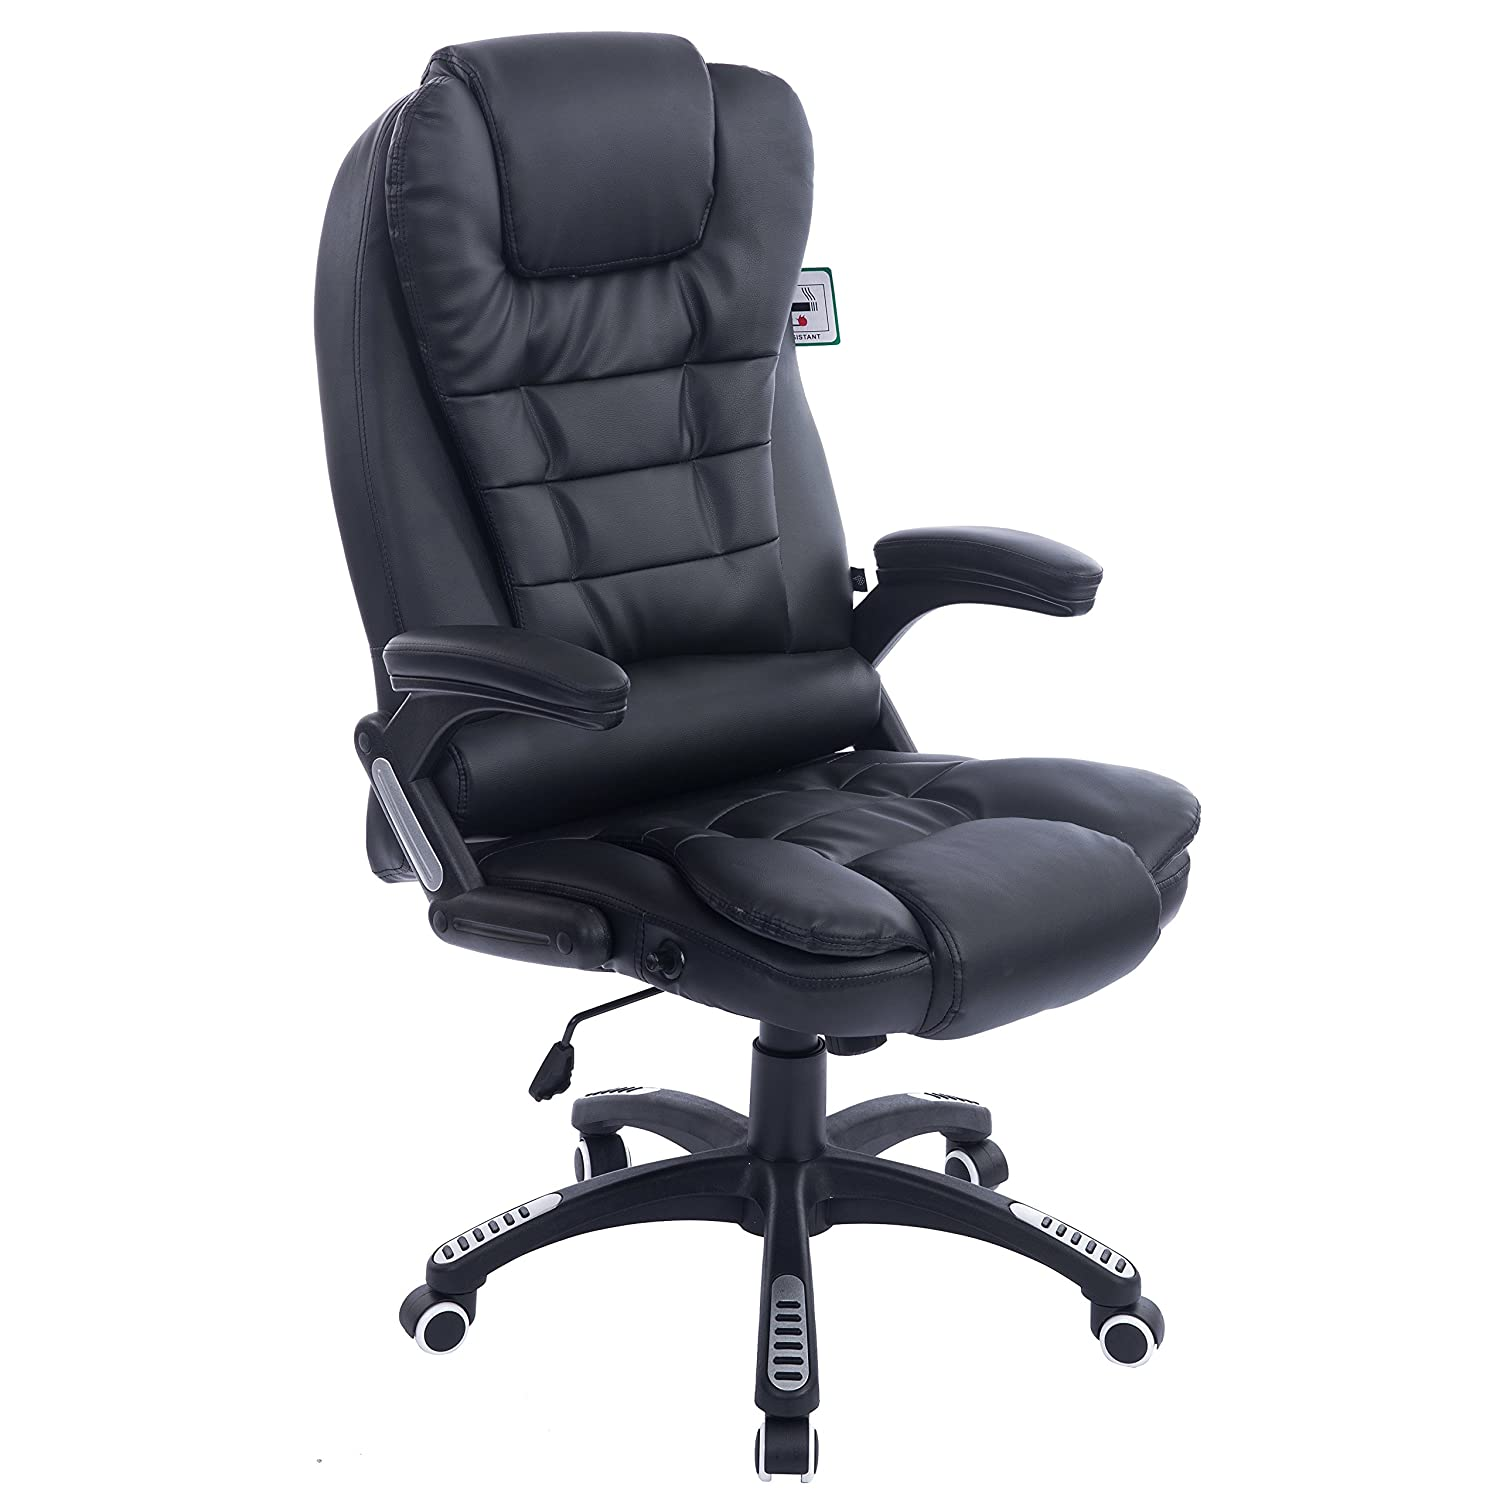 Best computer chair for gaming - Executive Recline Extra Padded Office Chair Standard Black